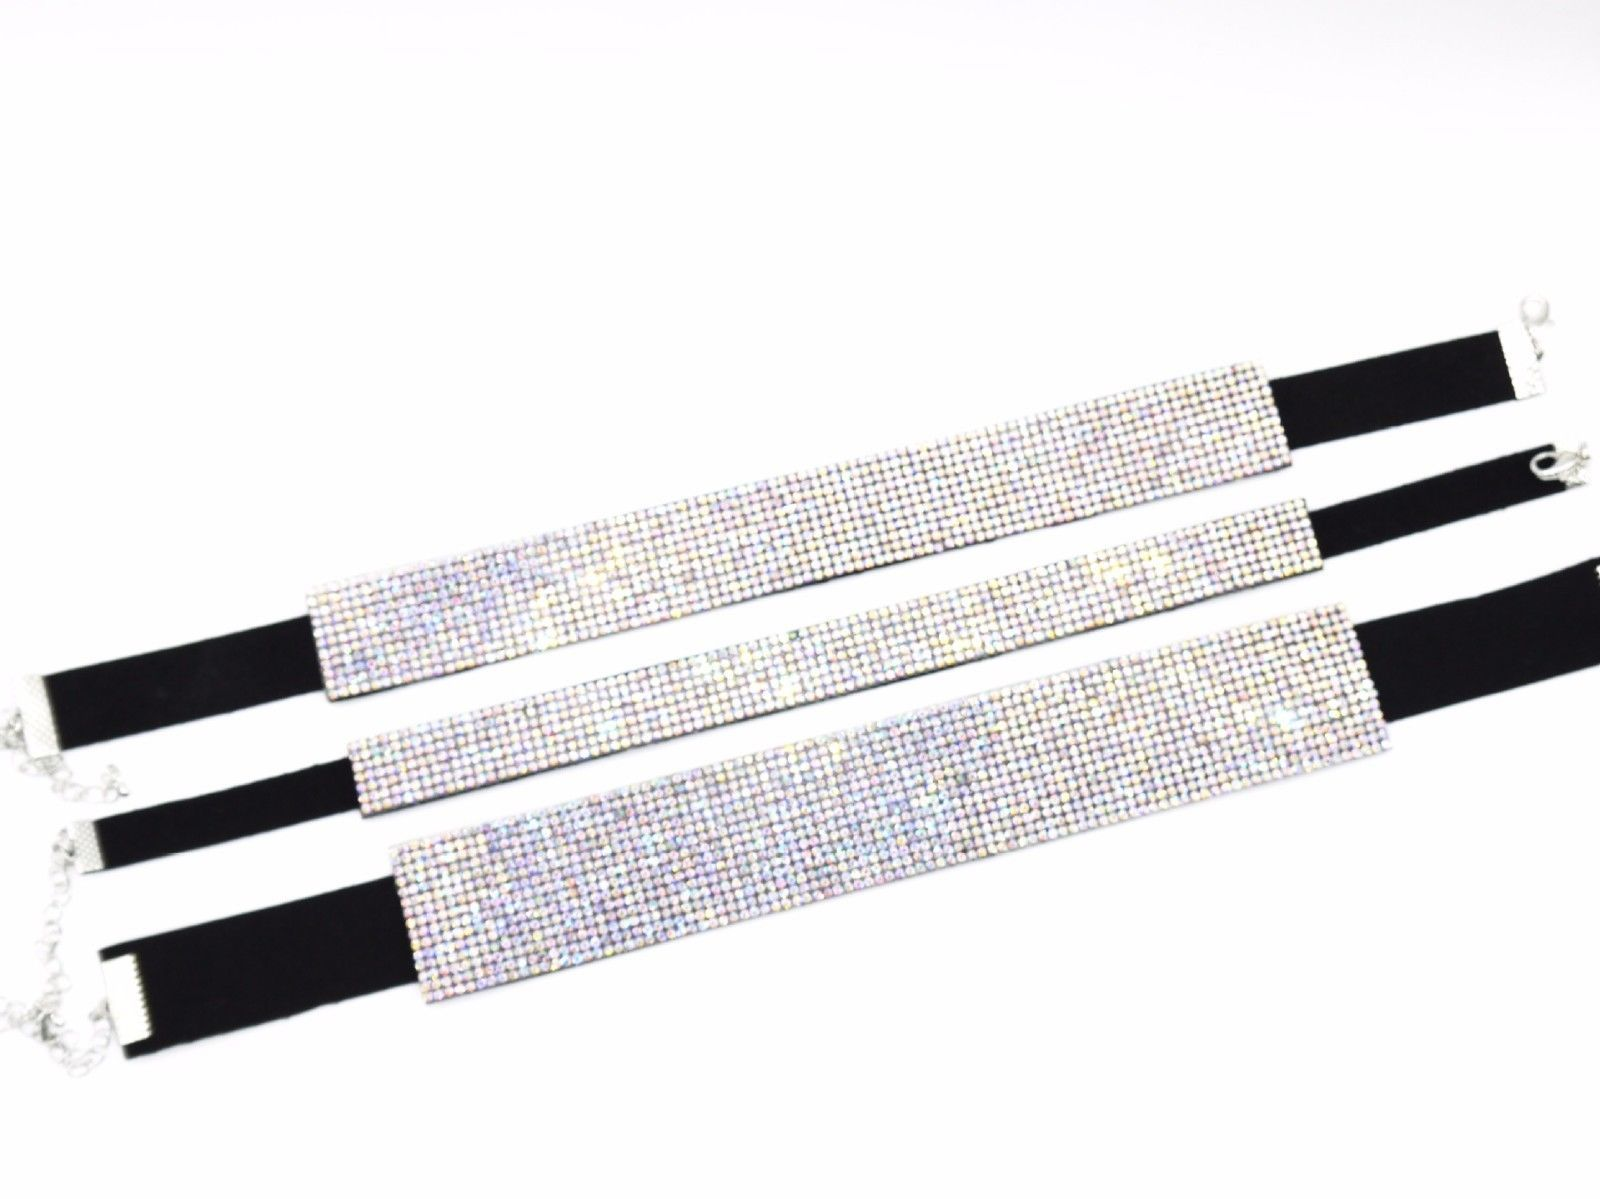 RHINESTONE SPARKLING CHOKER FULL CRYSTAL NECK COLLAR PARTY FASHION NECKLACE 2017